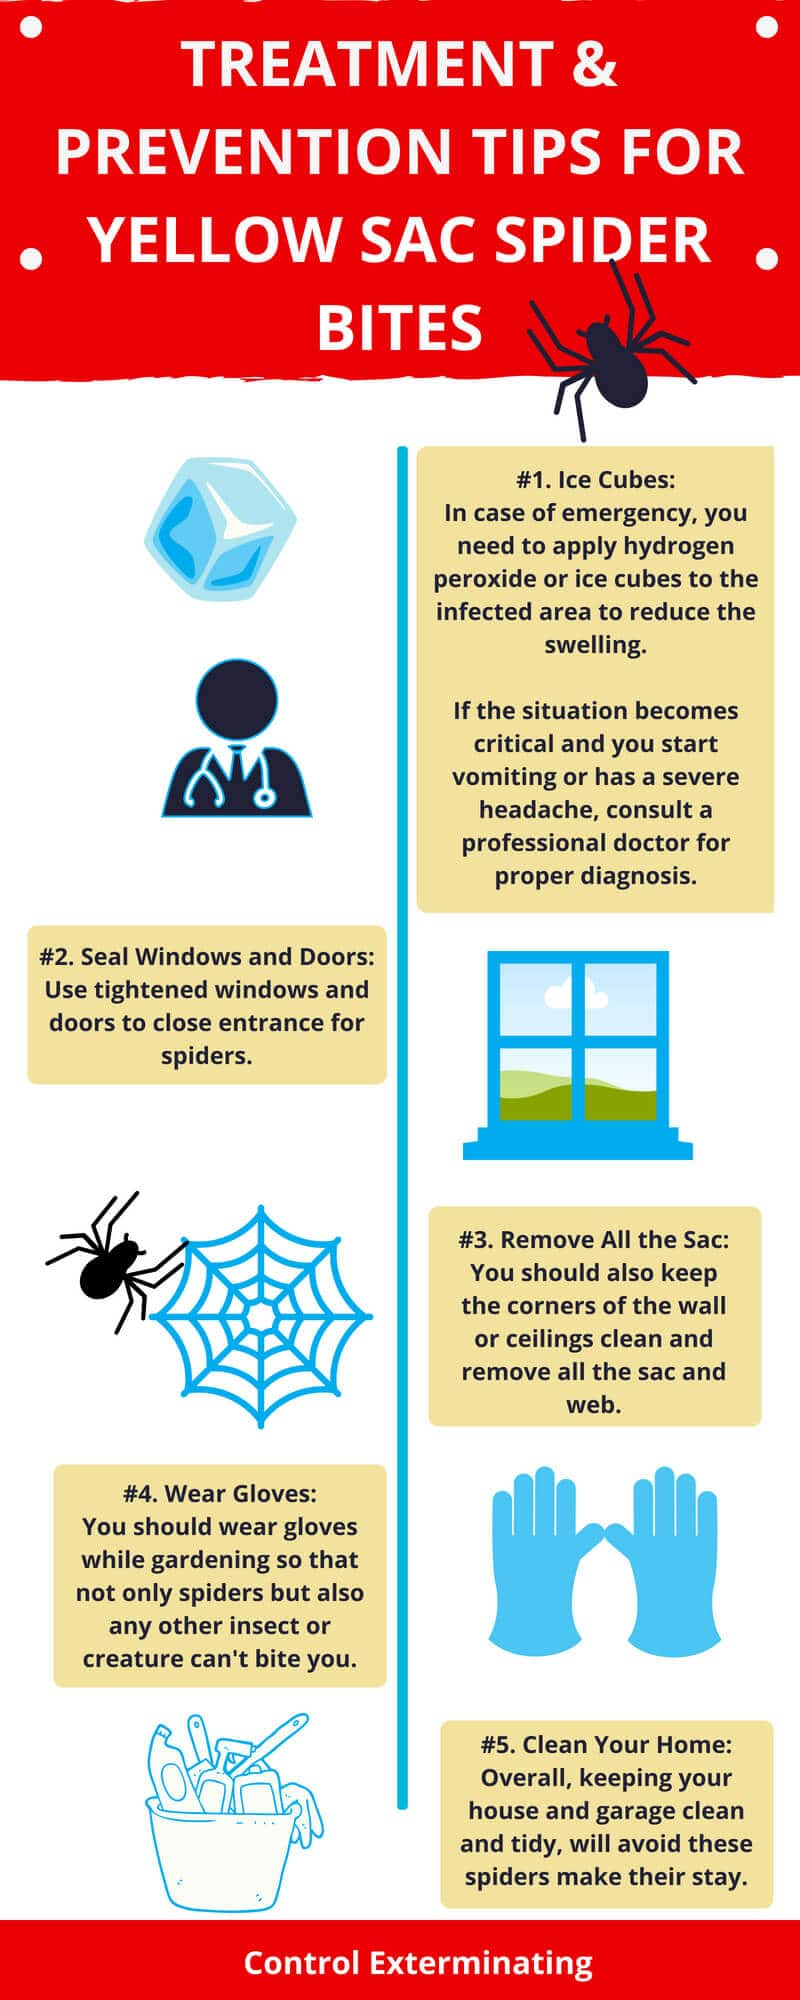 Yellow Sac Spider Bite: Are Their Bites Dangerous? Infographic